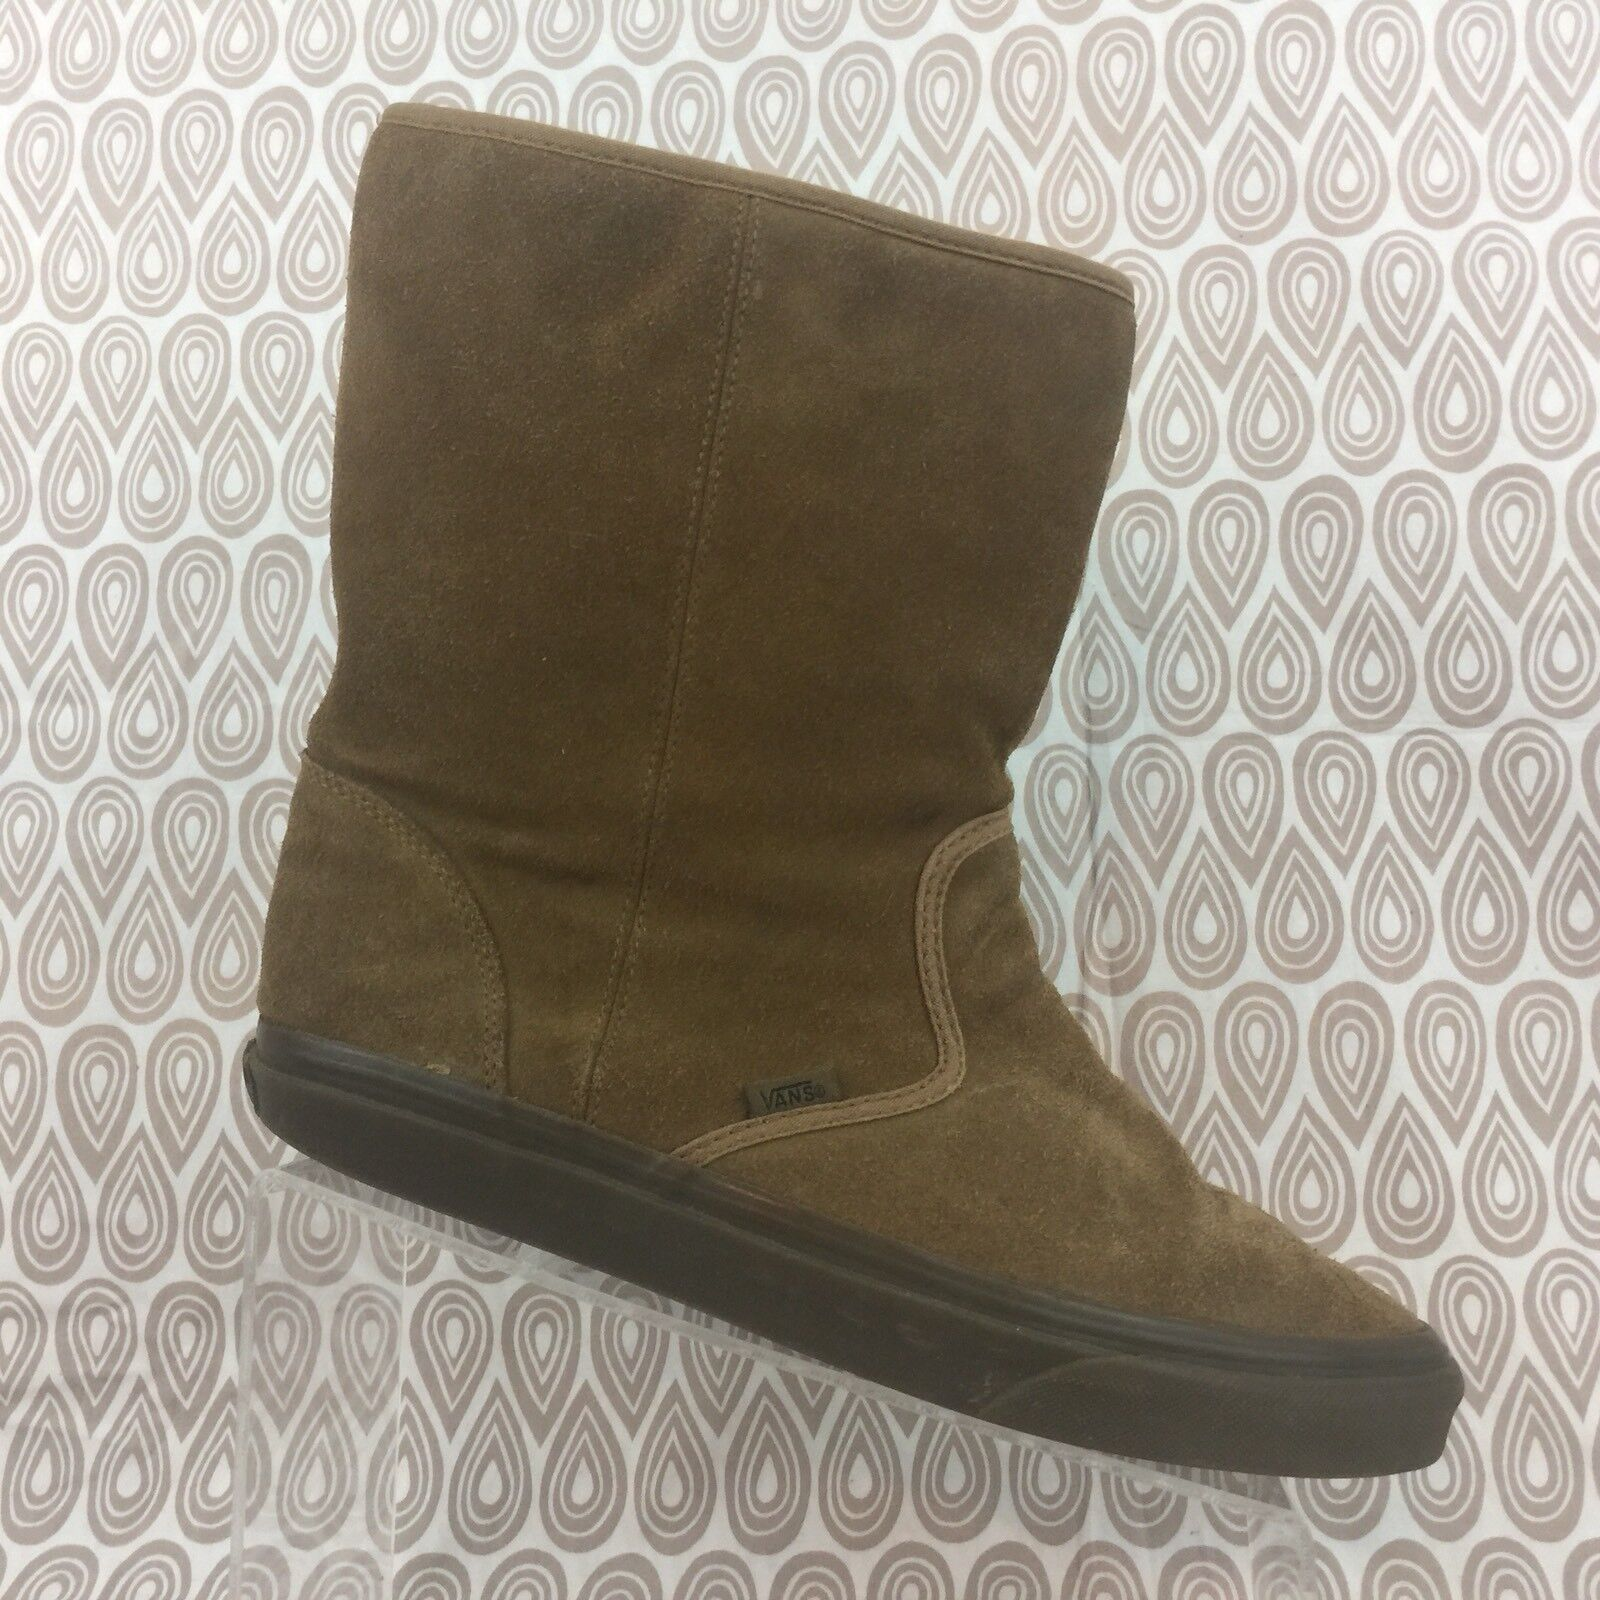 Vans Brown Suede Boots Size 8.5 Men's 10 Women's Slip On Mid Calf Shoes S110